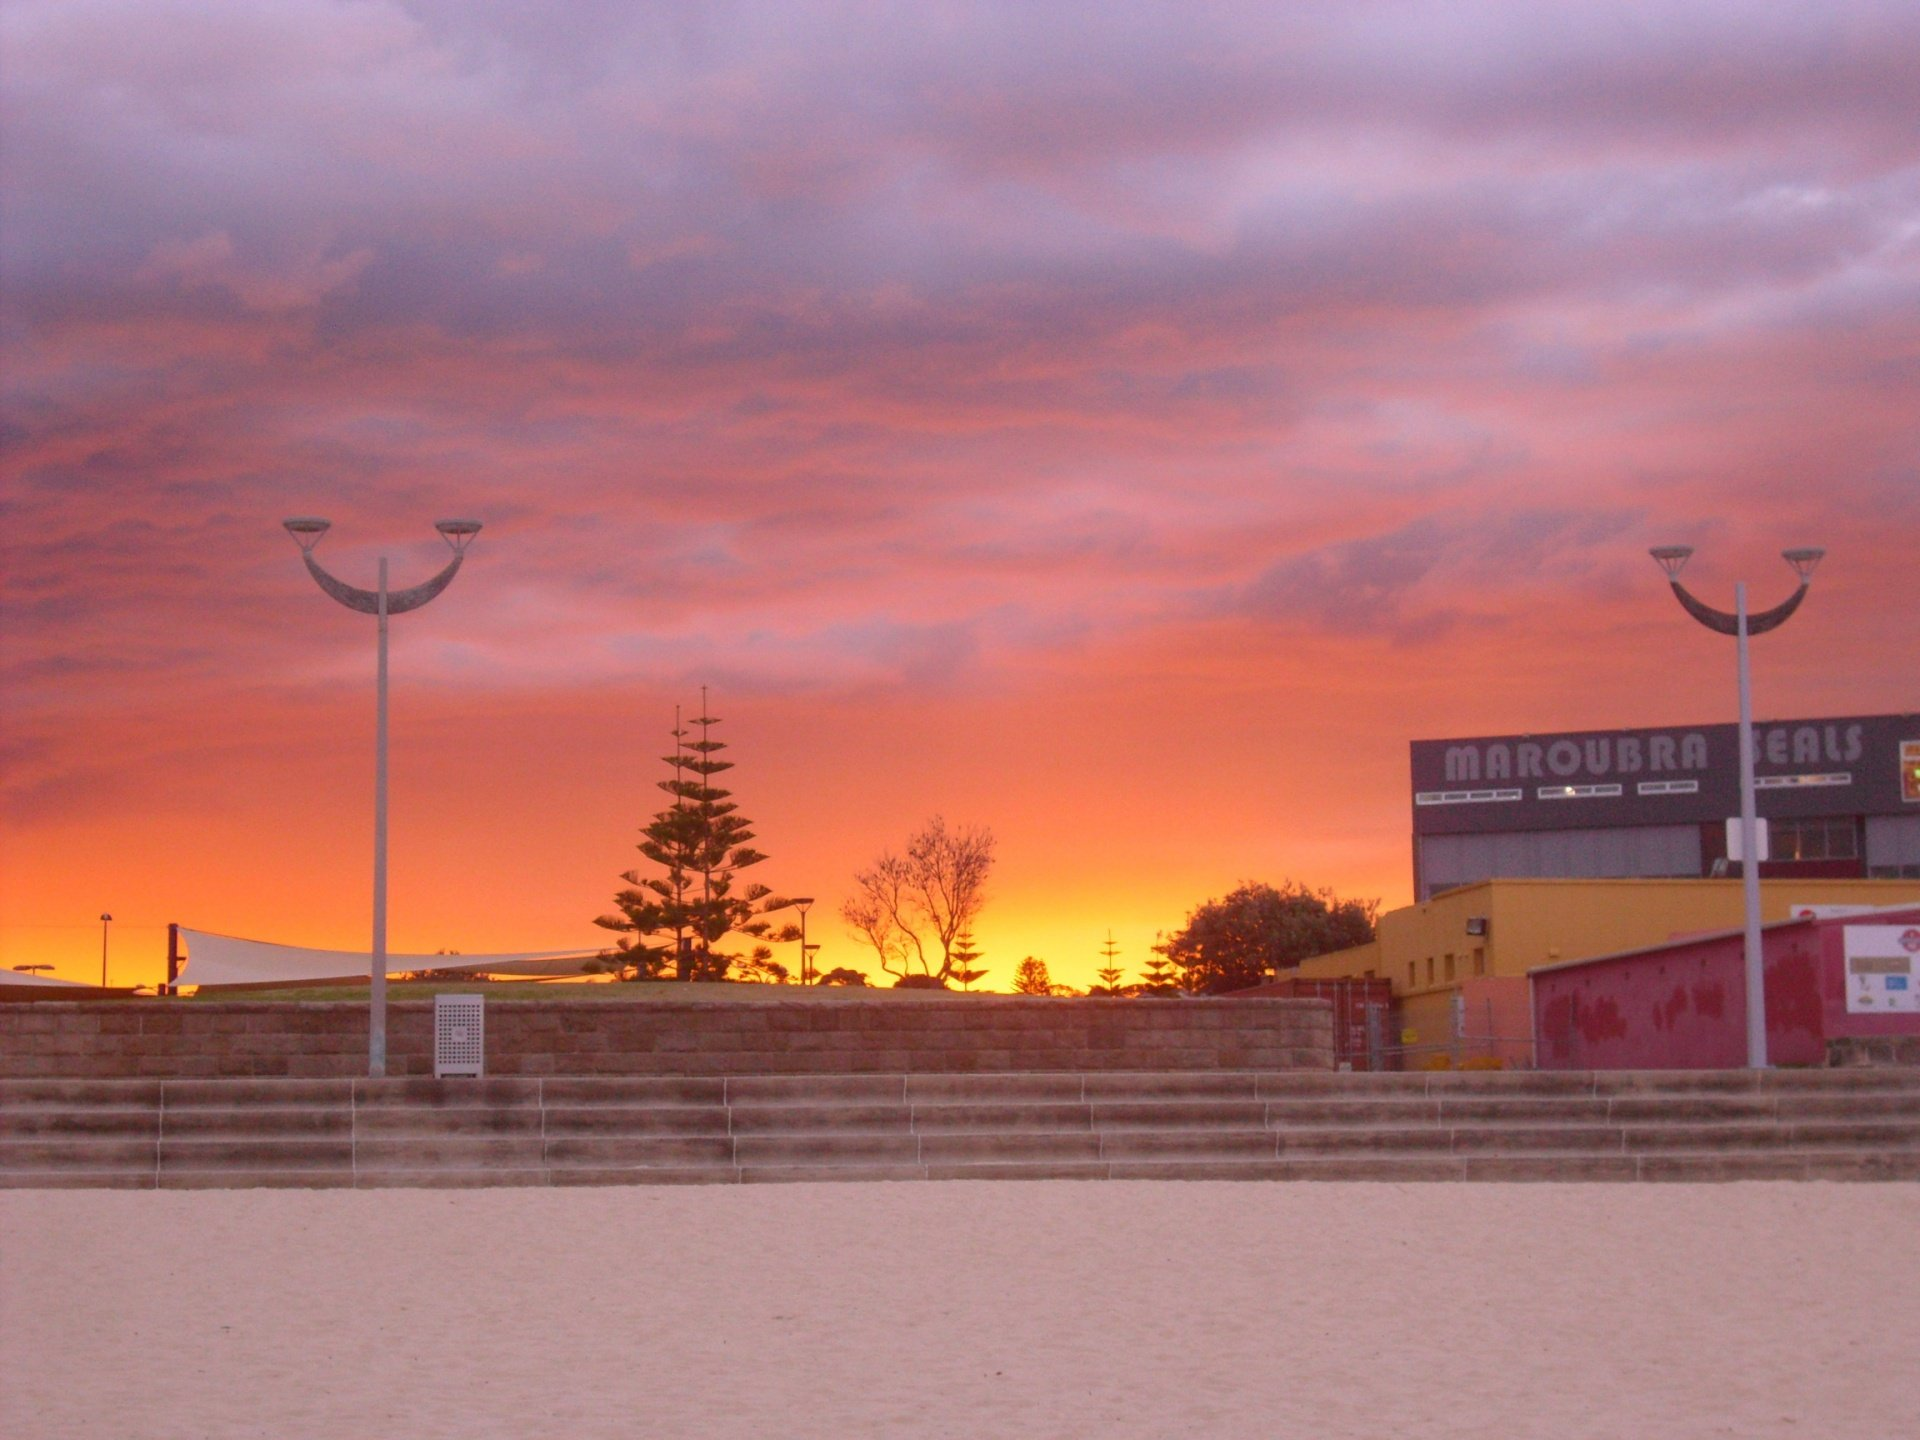 Simon Coyac's photo of Sydney (Maroubra)